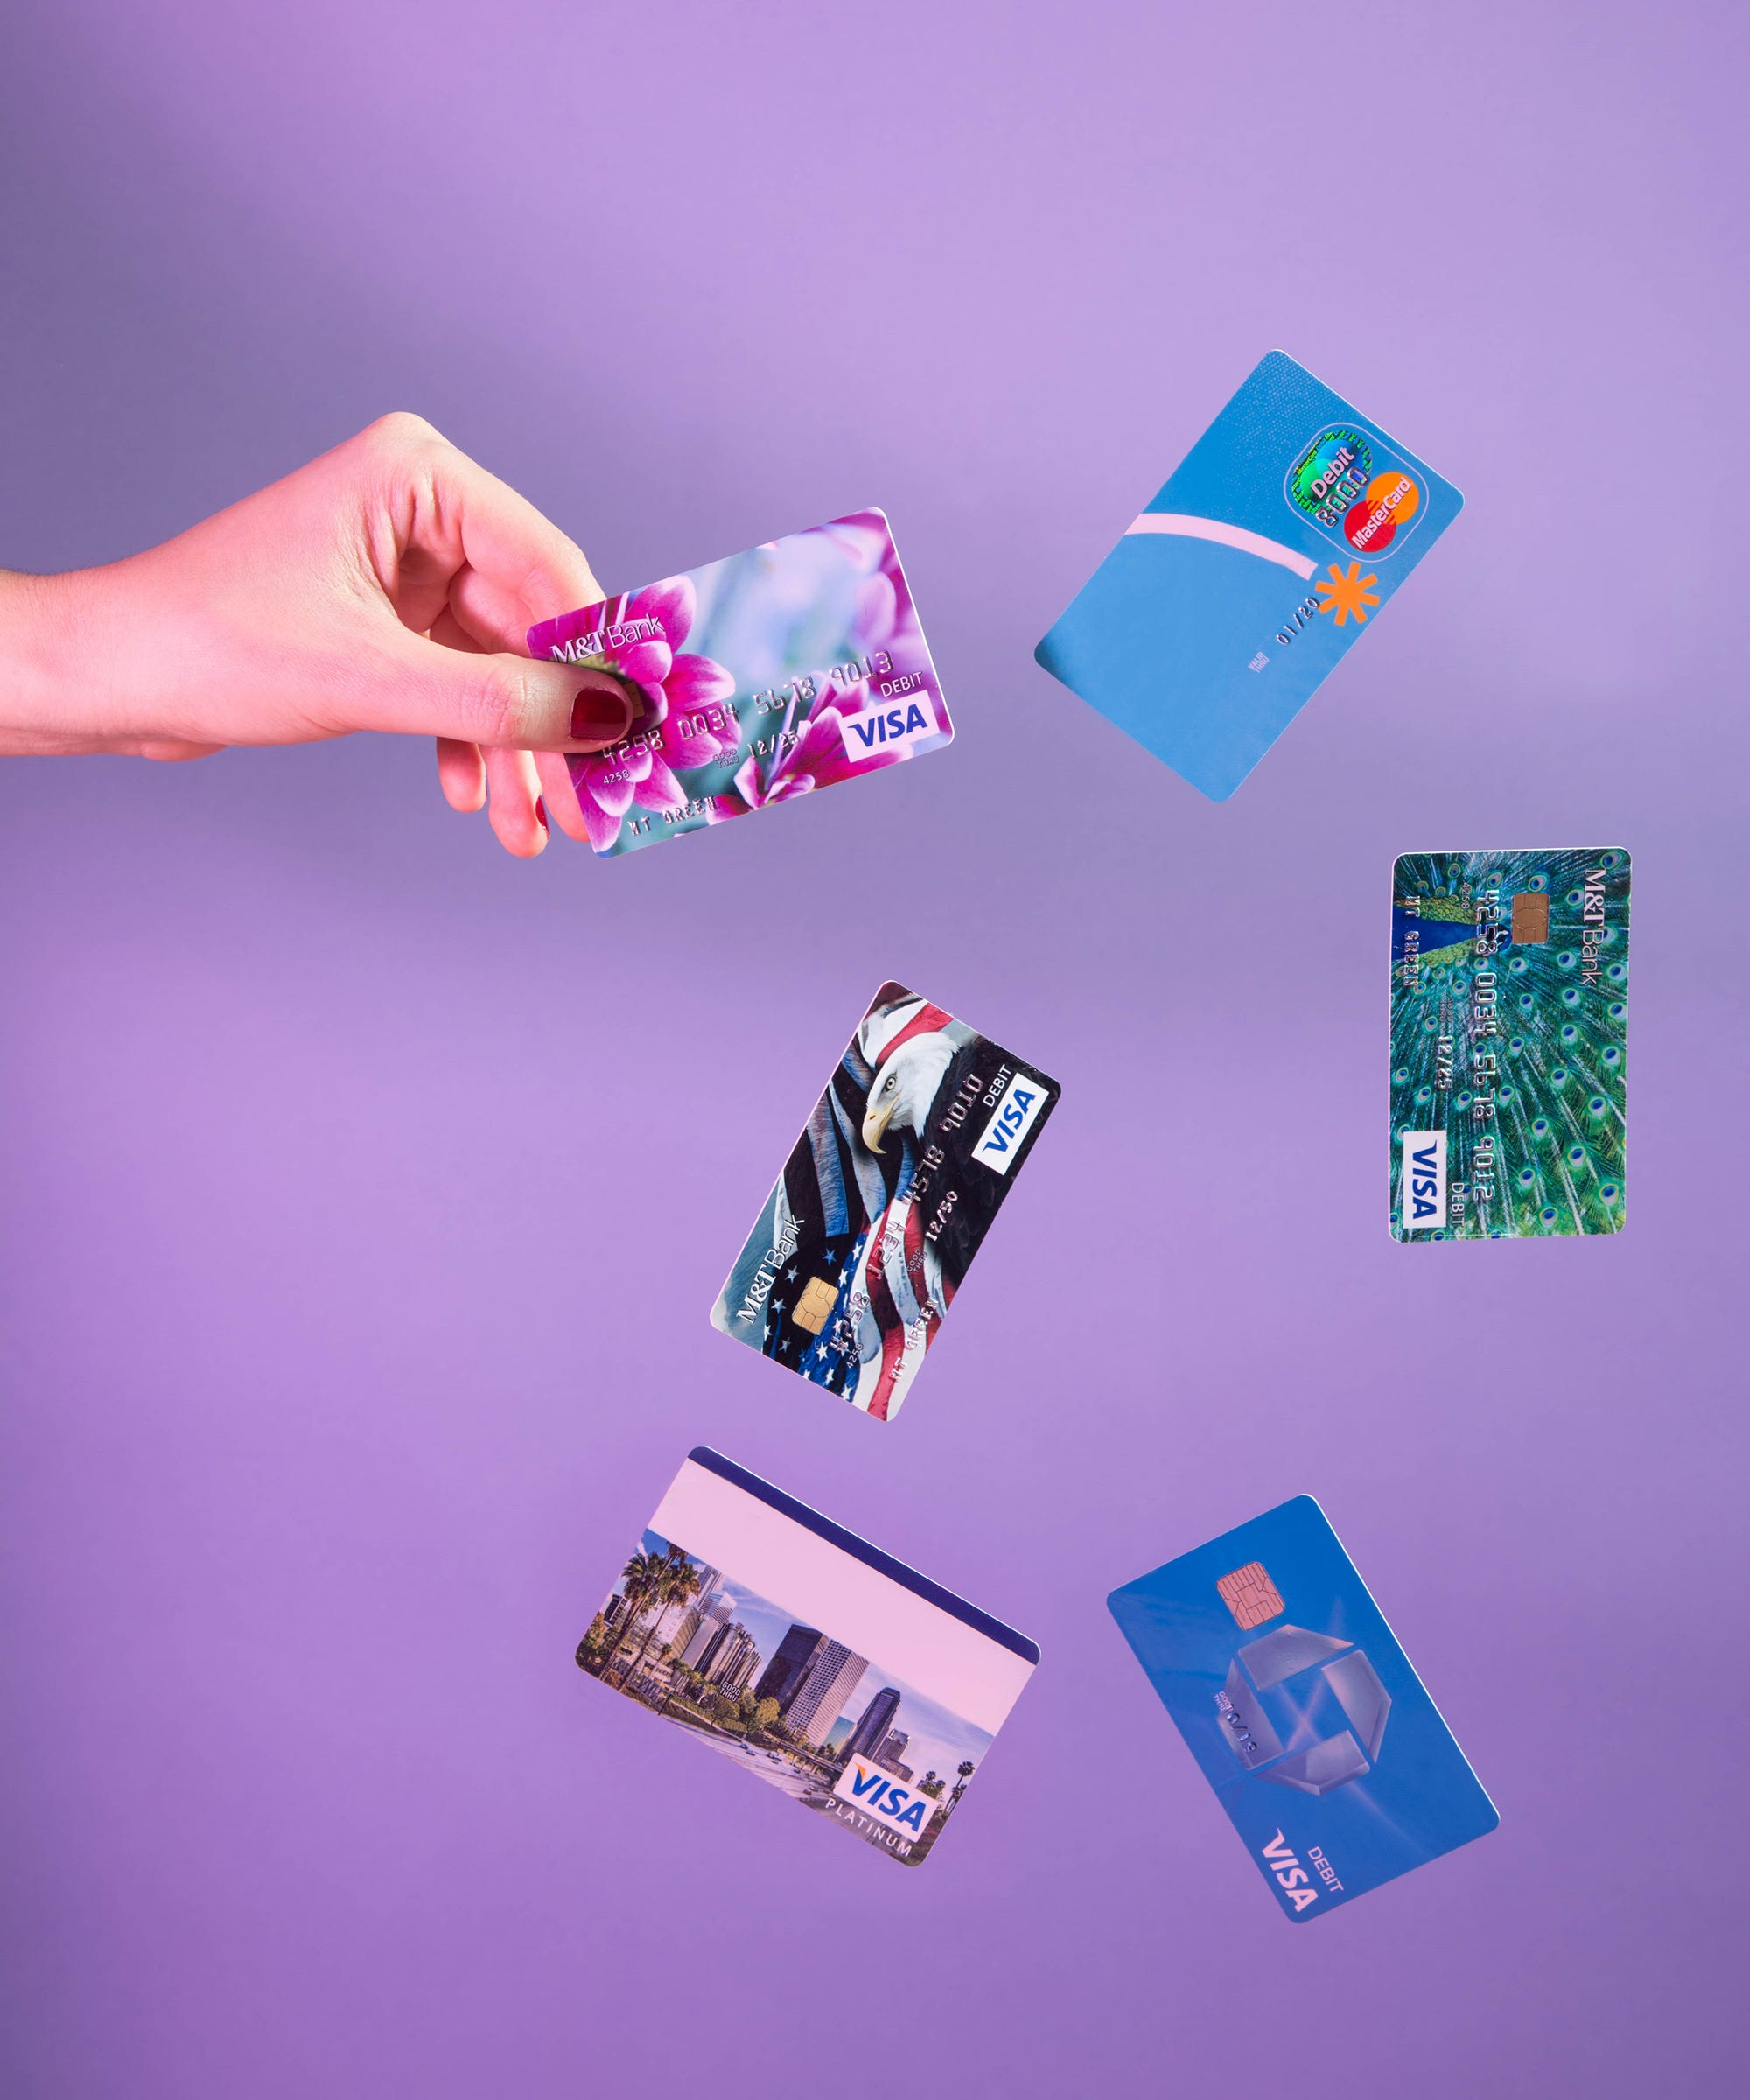 5 Credit Cards With Rewards You'll Actually Use